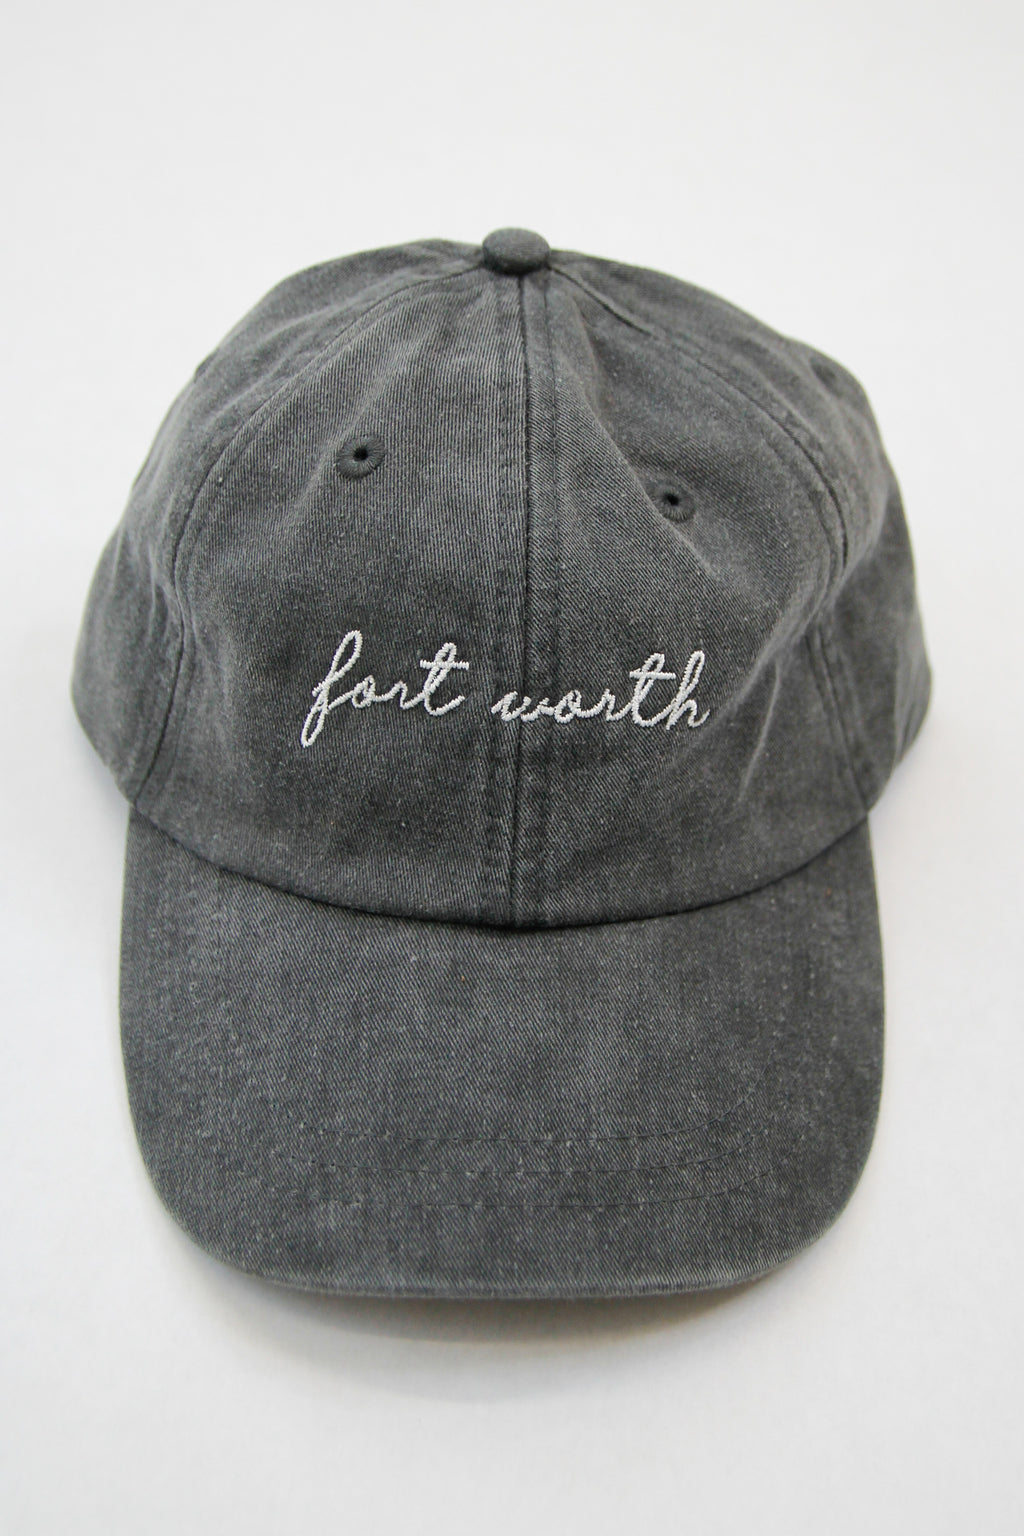 Fort Worth Ball Cap - Charcoal